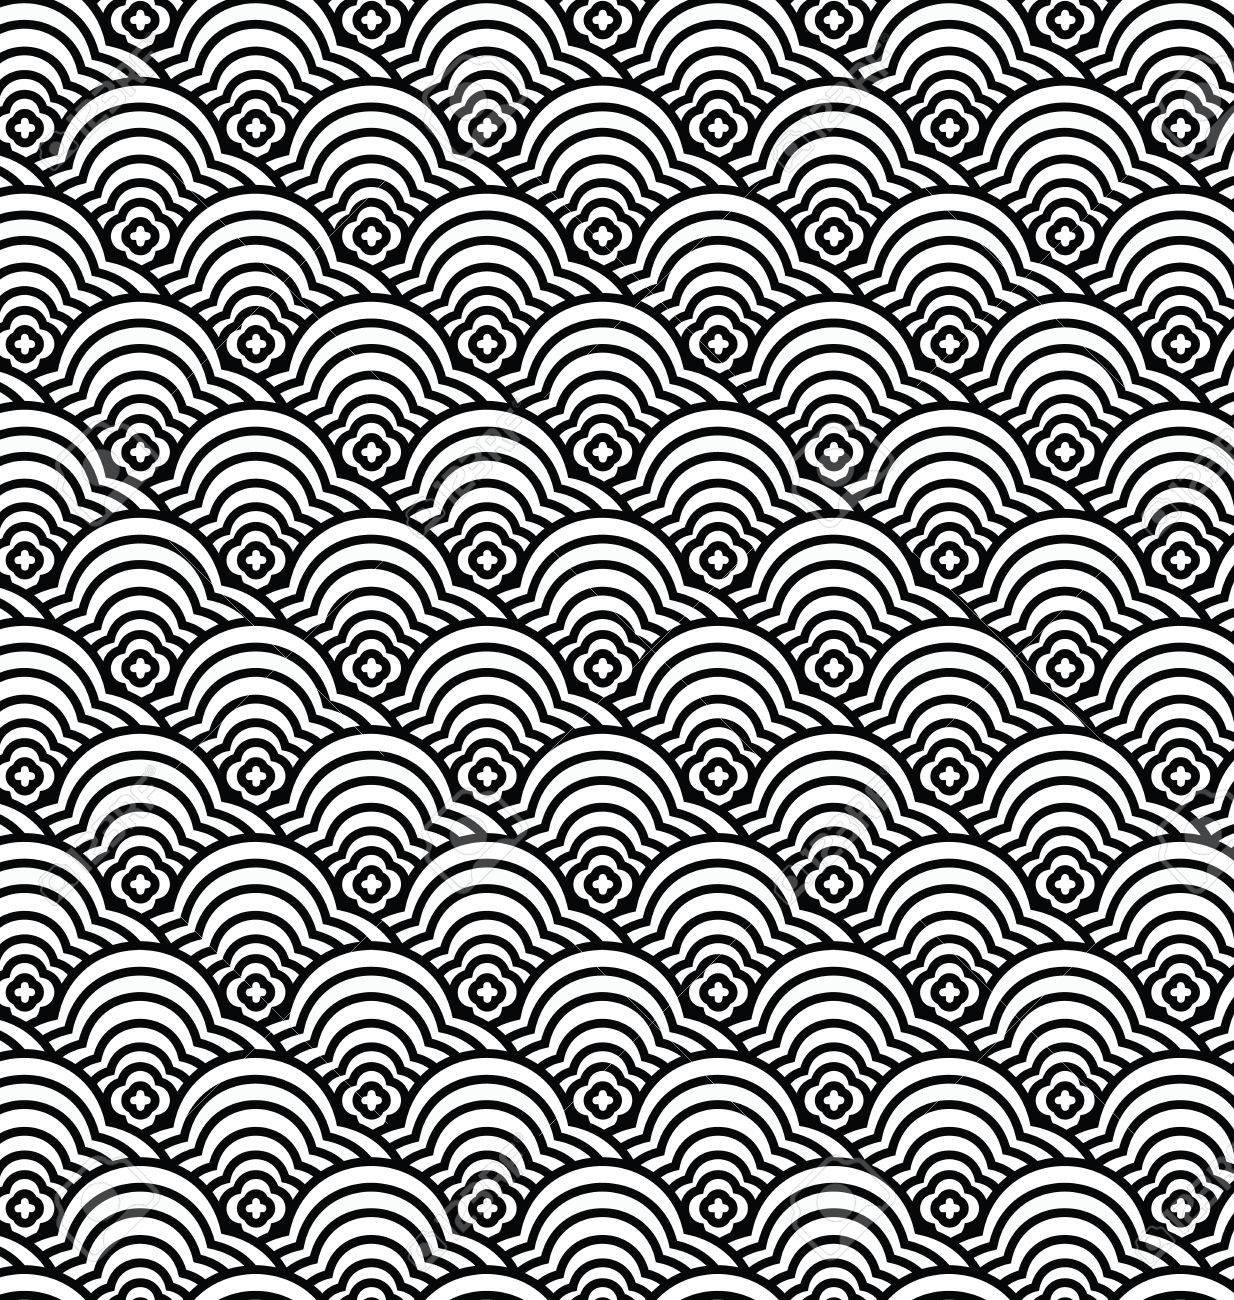 Chinese Seamless Pattern Vector Waves Illustration Stock